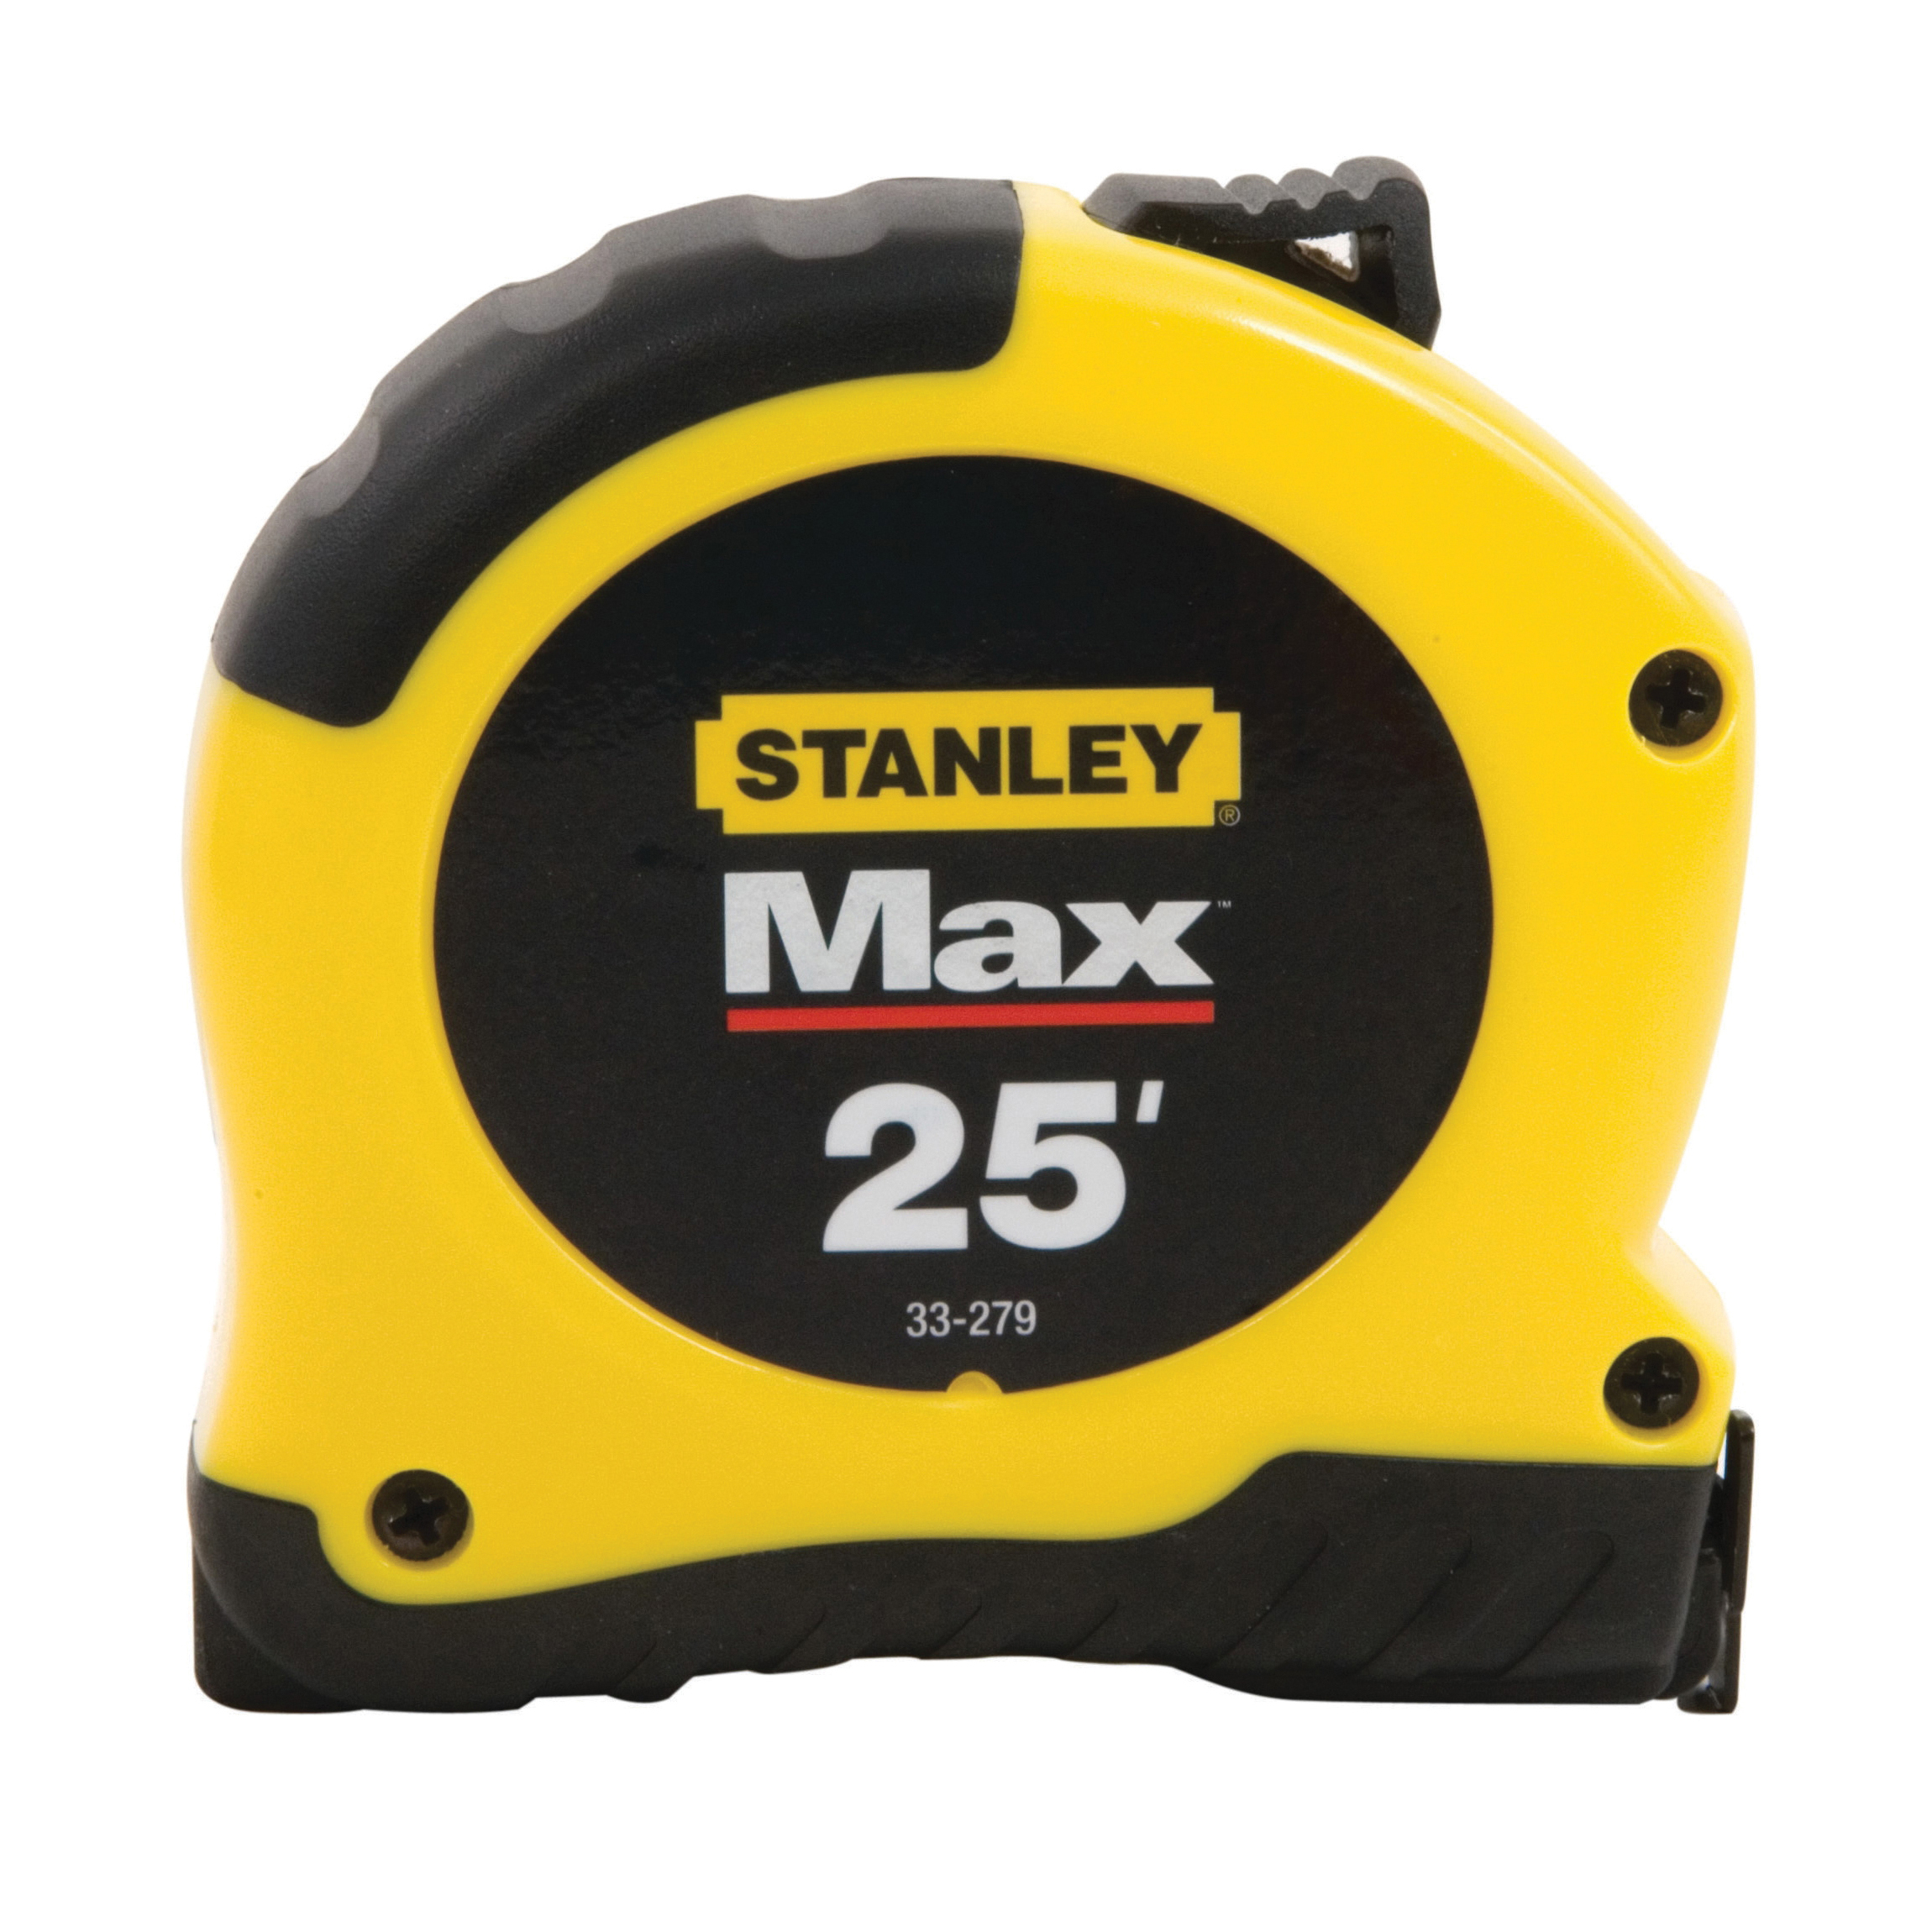 Stanley® 33-279 Max Measuring Tape, 25 ft L x 1-1/8 in W Blade, Steel, Imperial, 1/16 in